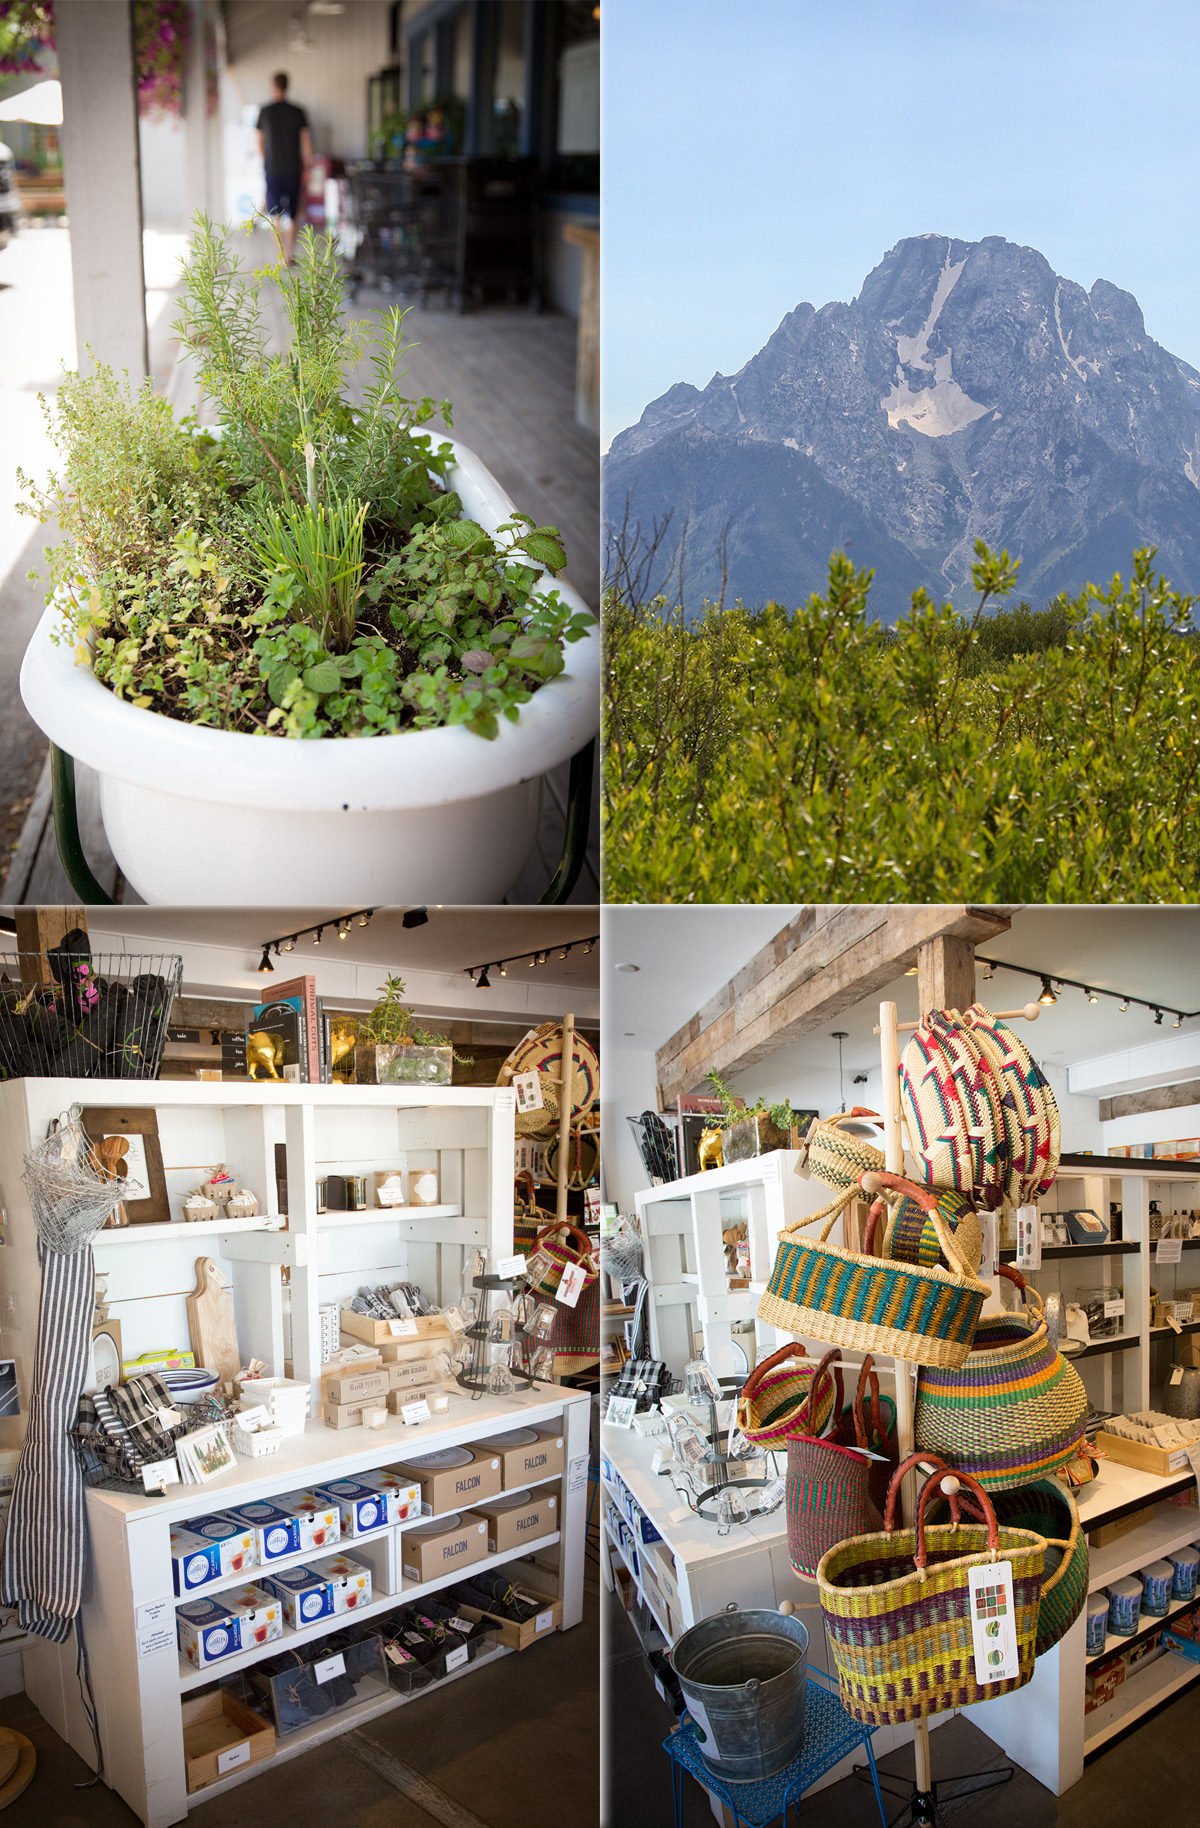 Discovering the Aspens Market in Jackson Hole